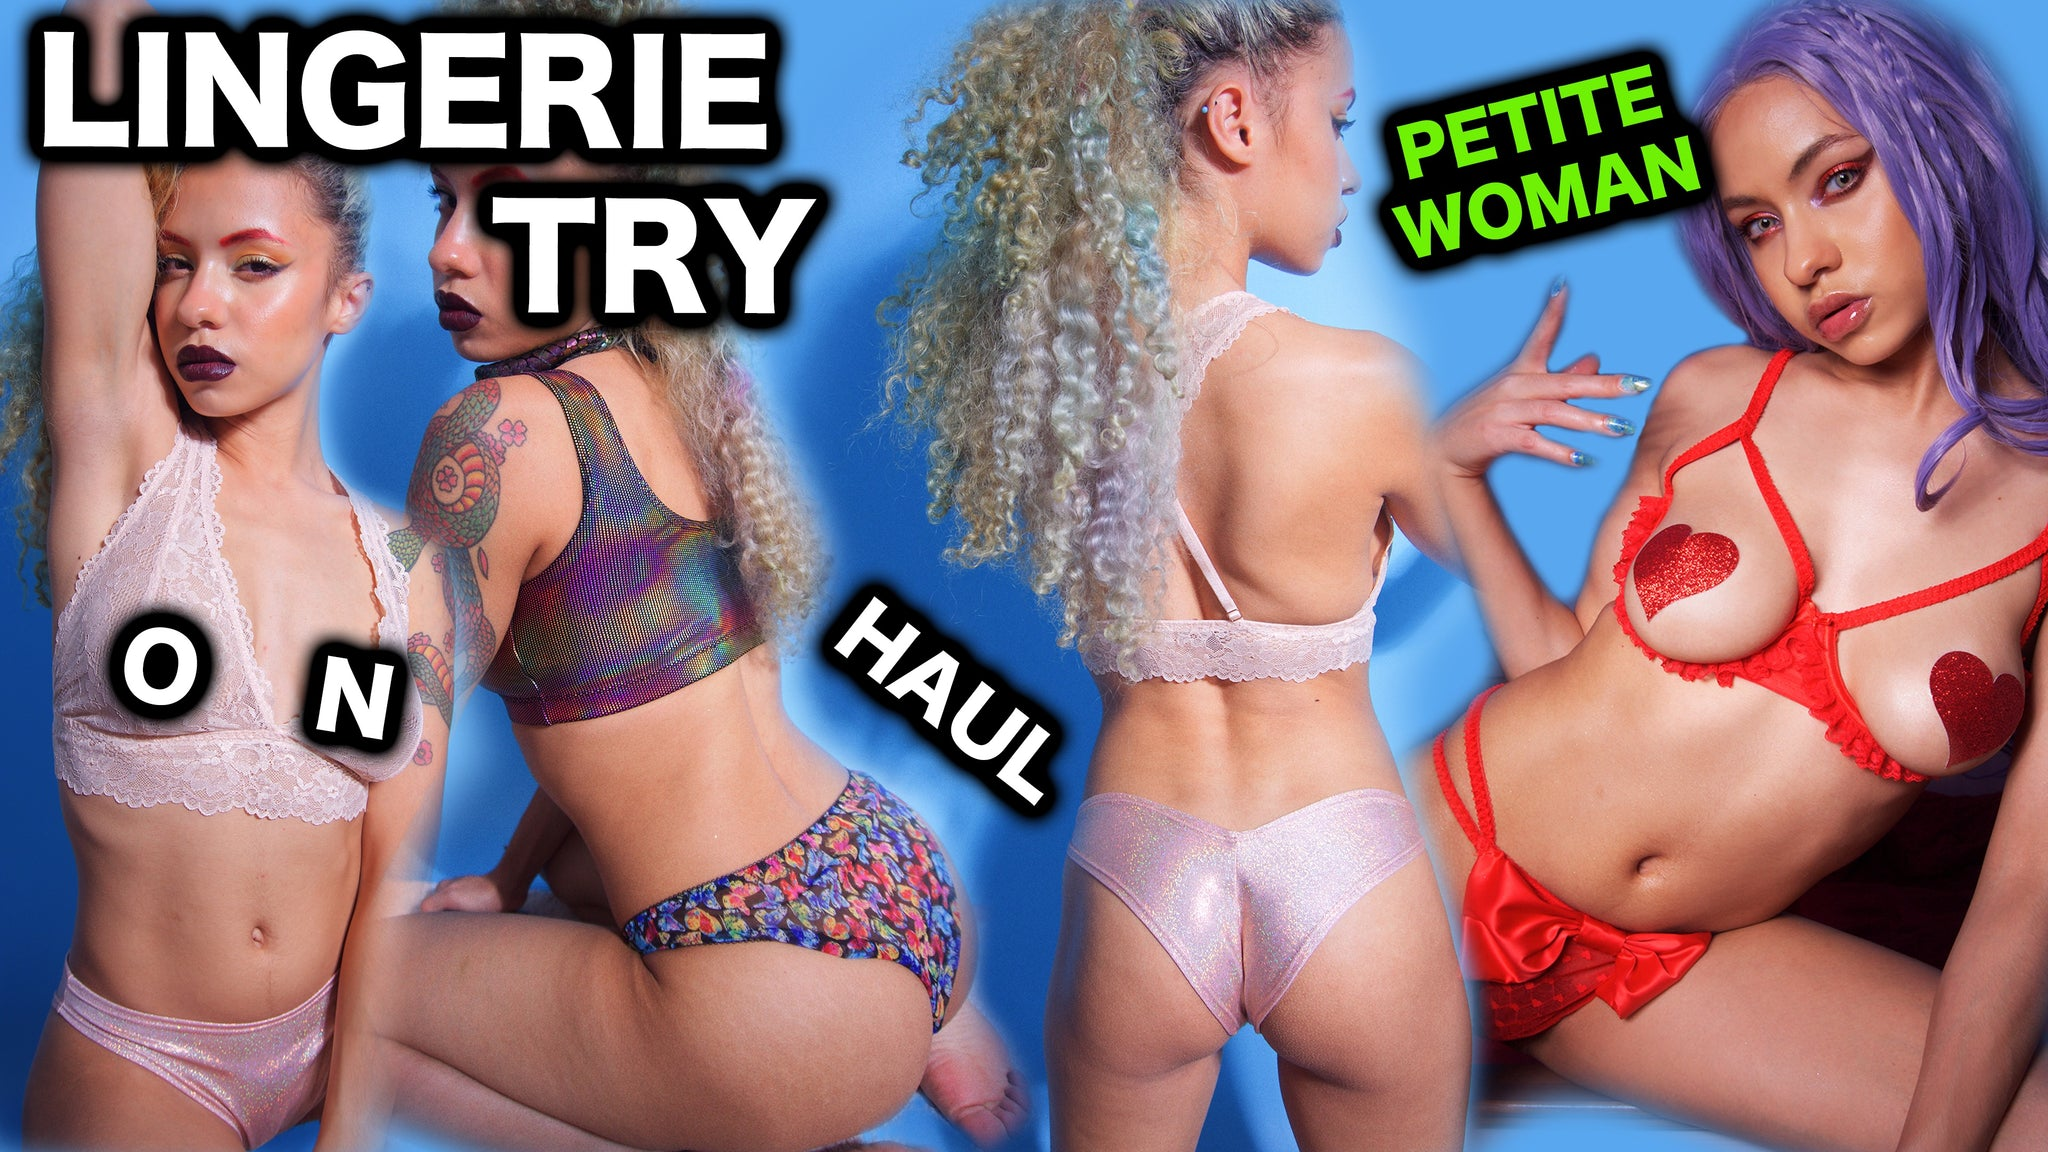 LINGERIE TRY ON Petite Clothing HAUL 2020 SAVAGExFENTY review FreedomRaveWear PETITE WOMEN Clothing